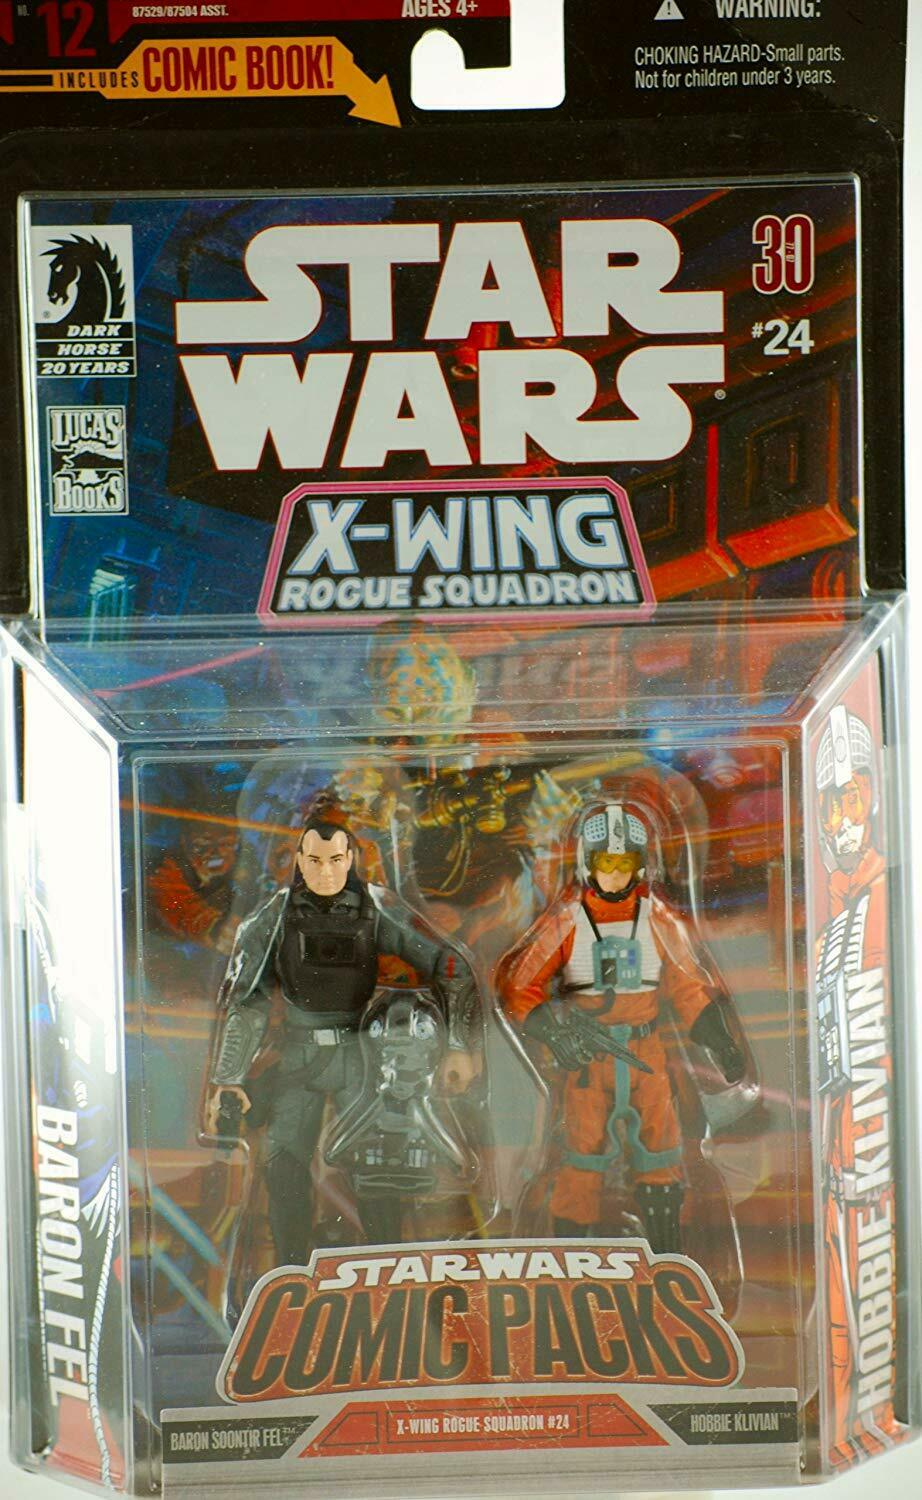 Hasbro Star Wars Expanded Universe X-Wing Rogue Squadron